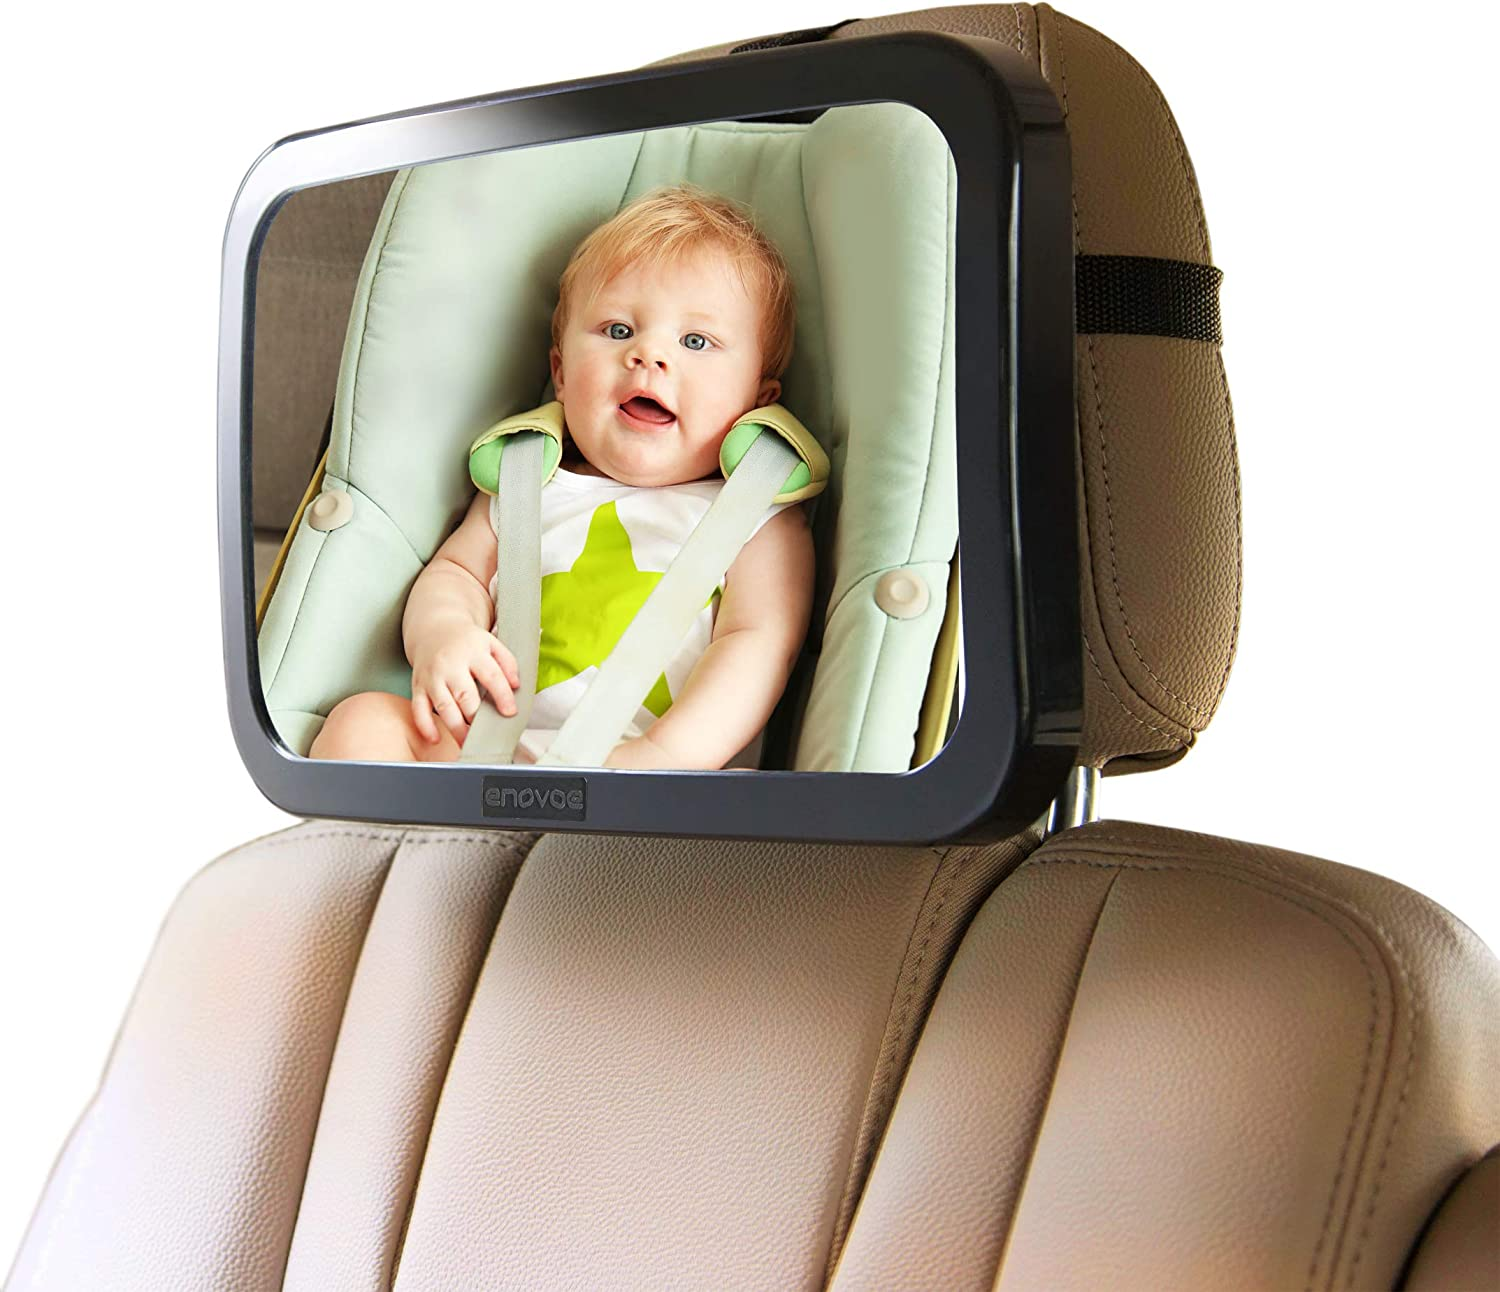 Enovoe Baby Car Mirror Popular product with Cleaning S Credence Convex Back - Wide Cloth